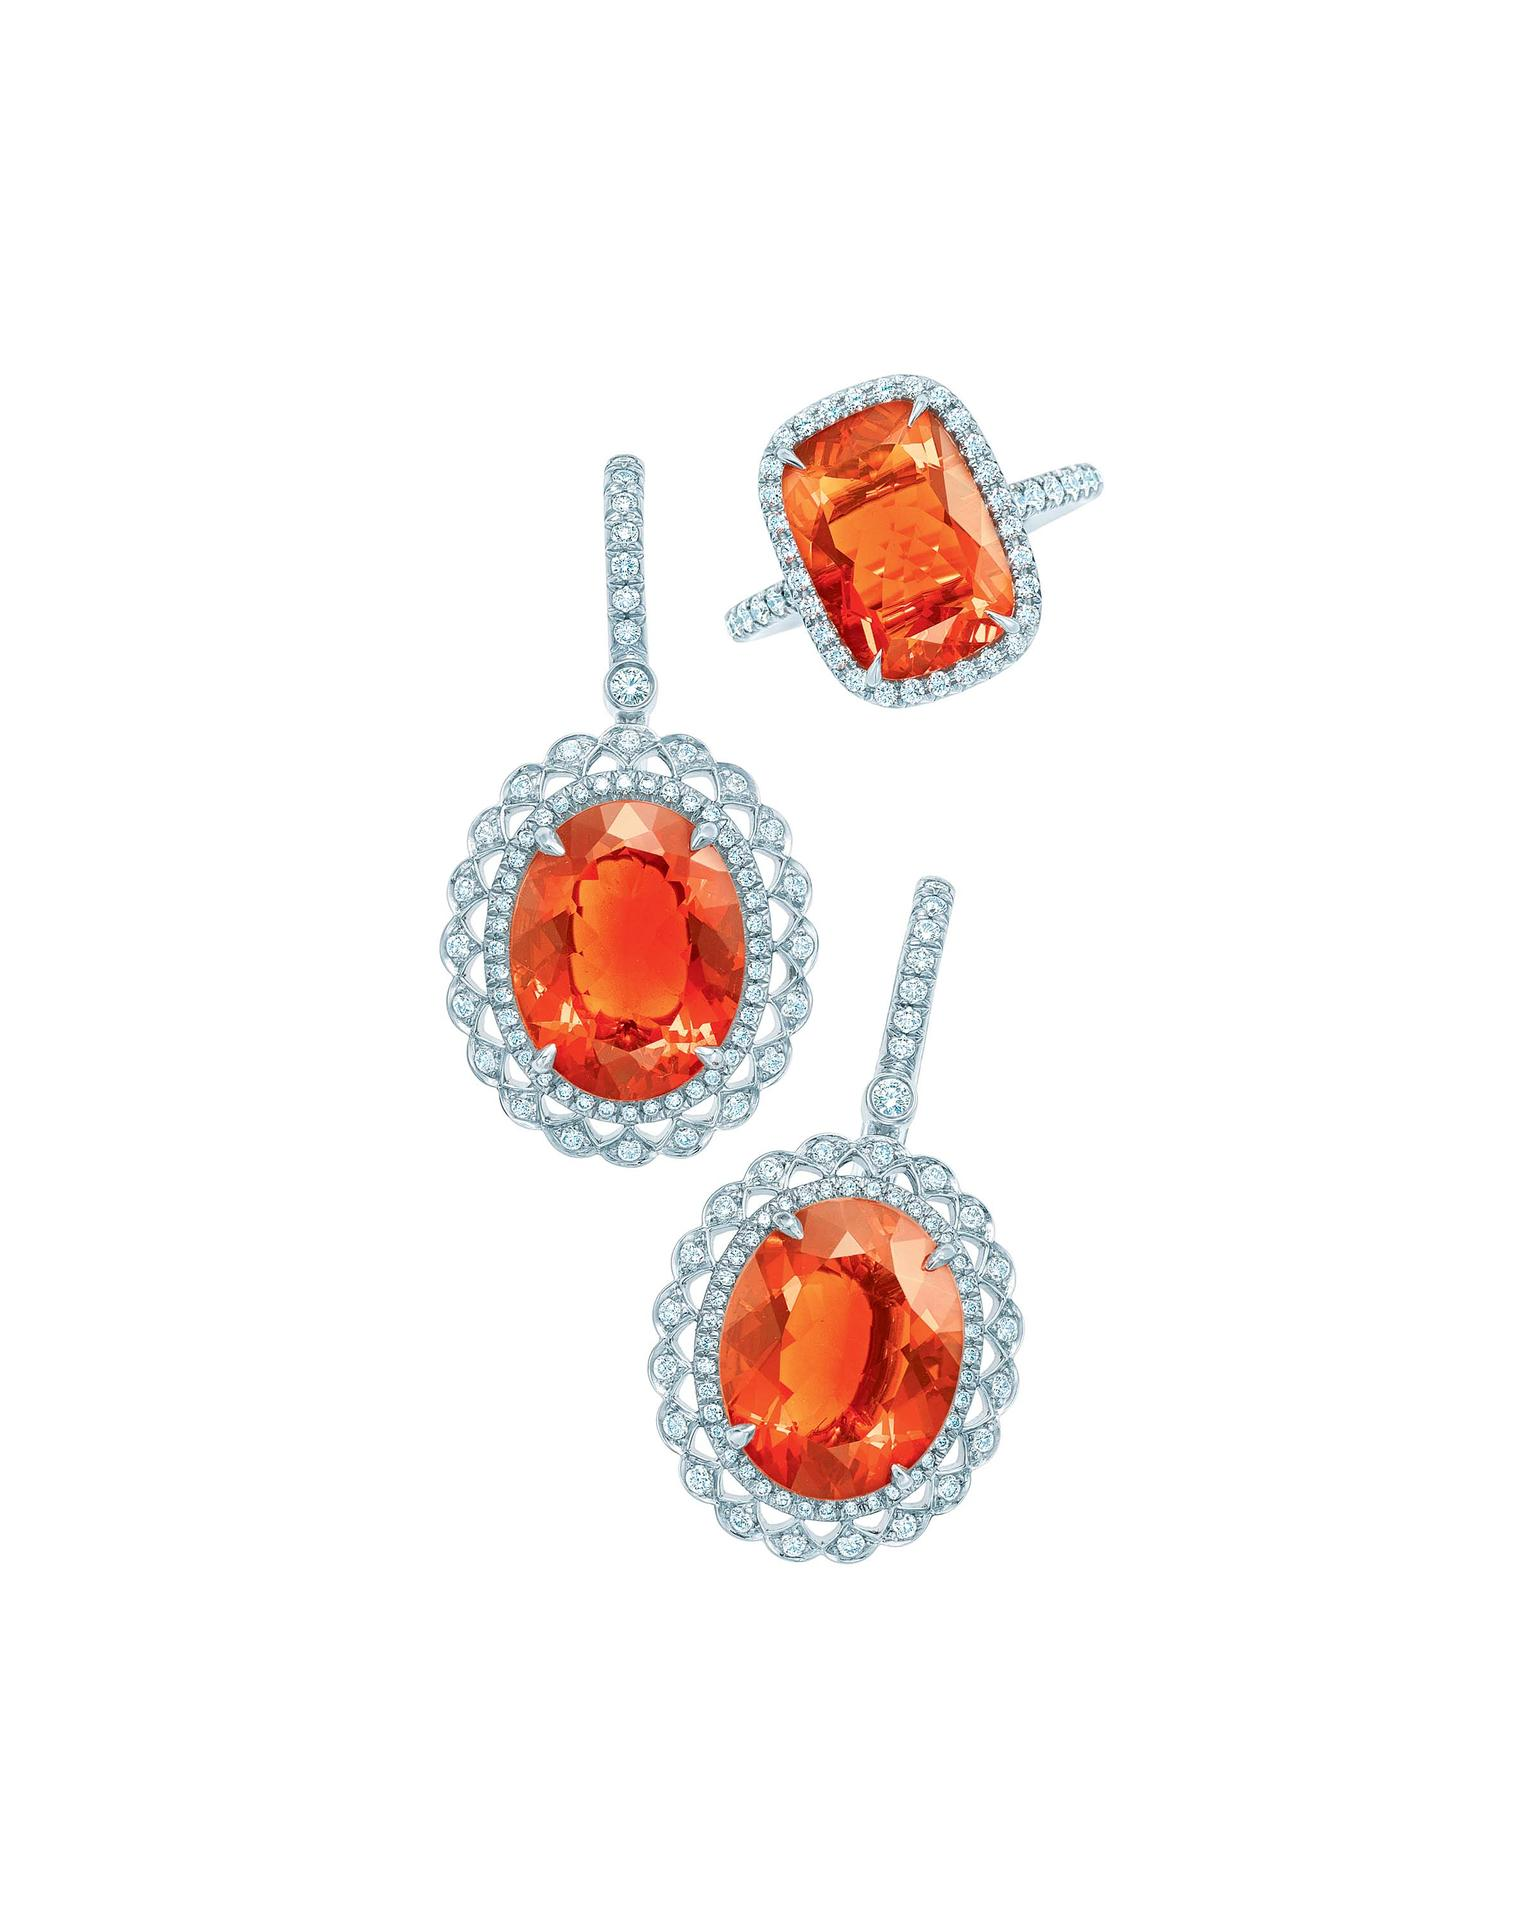 Tiffany & Co. Blue Book Collection fire opal earrings and ring with diamonds set in platinum